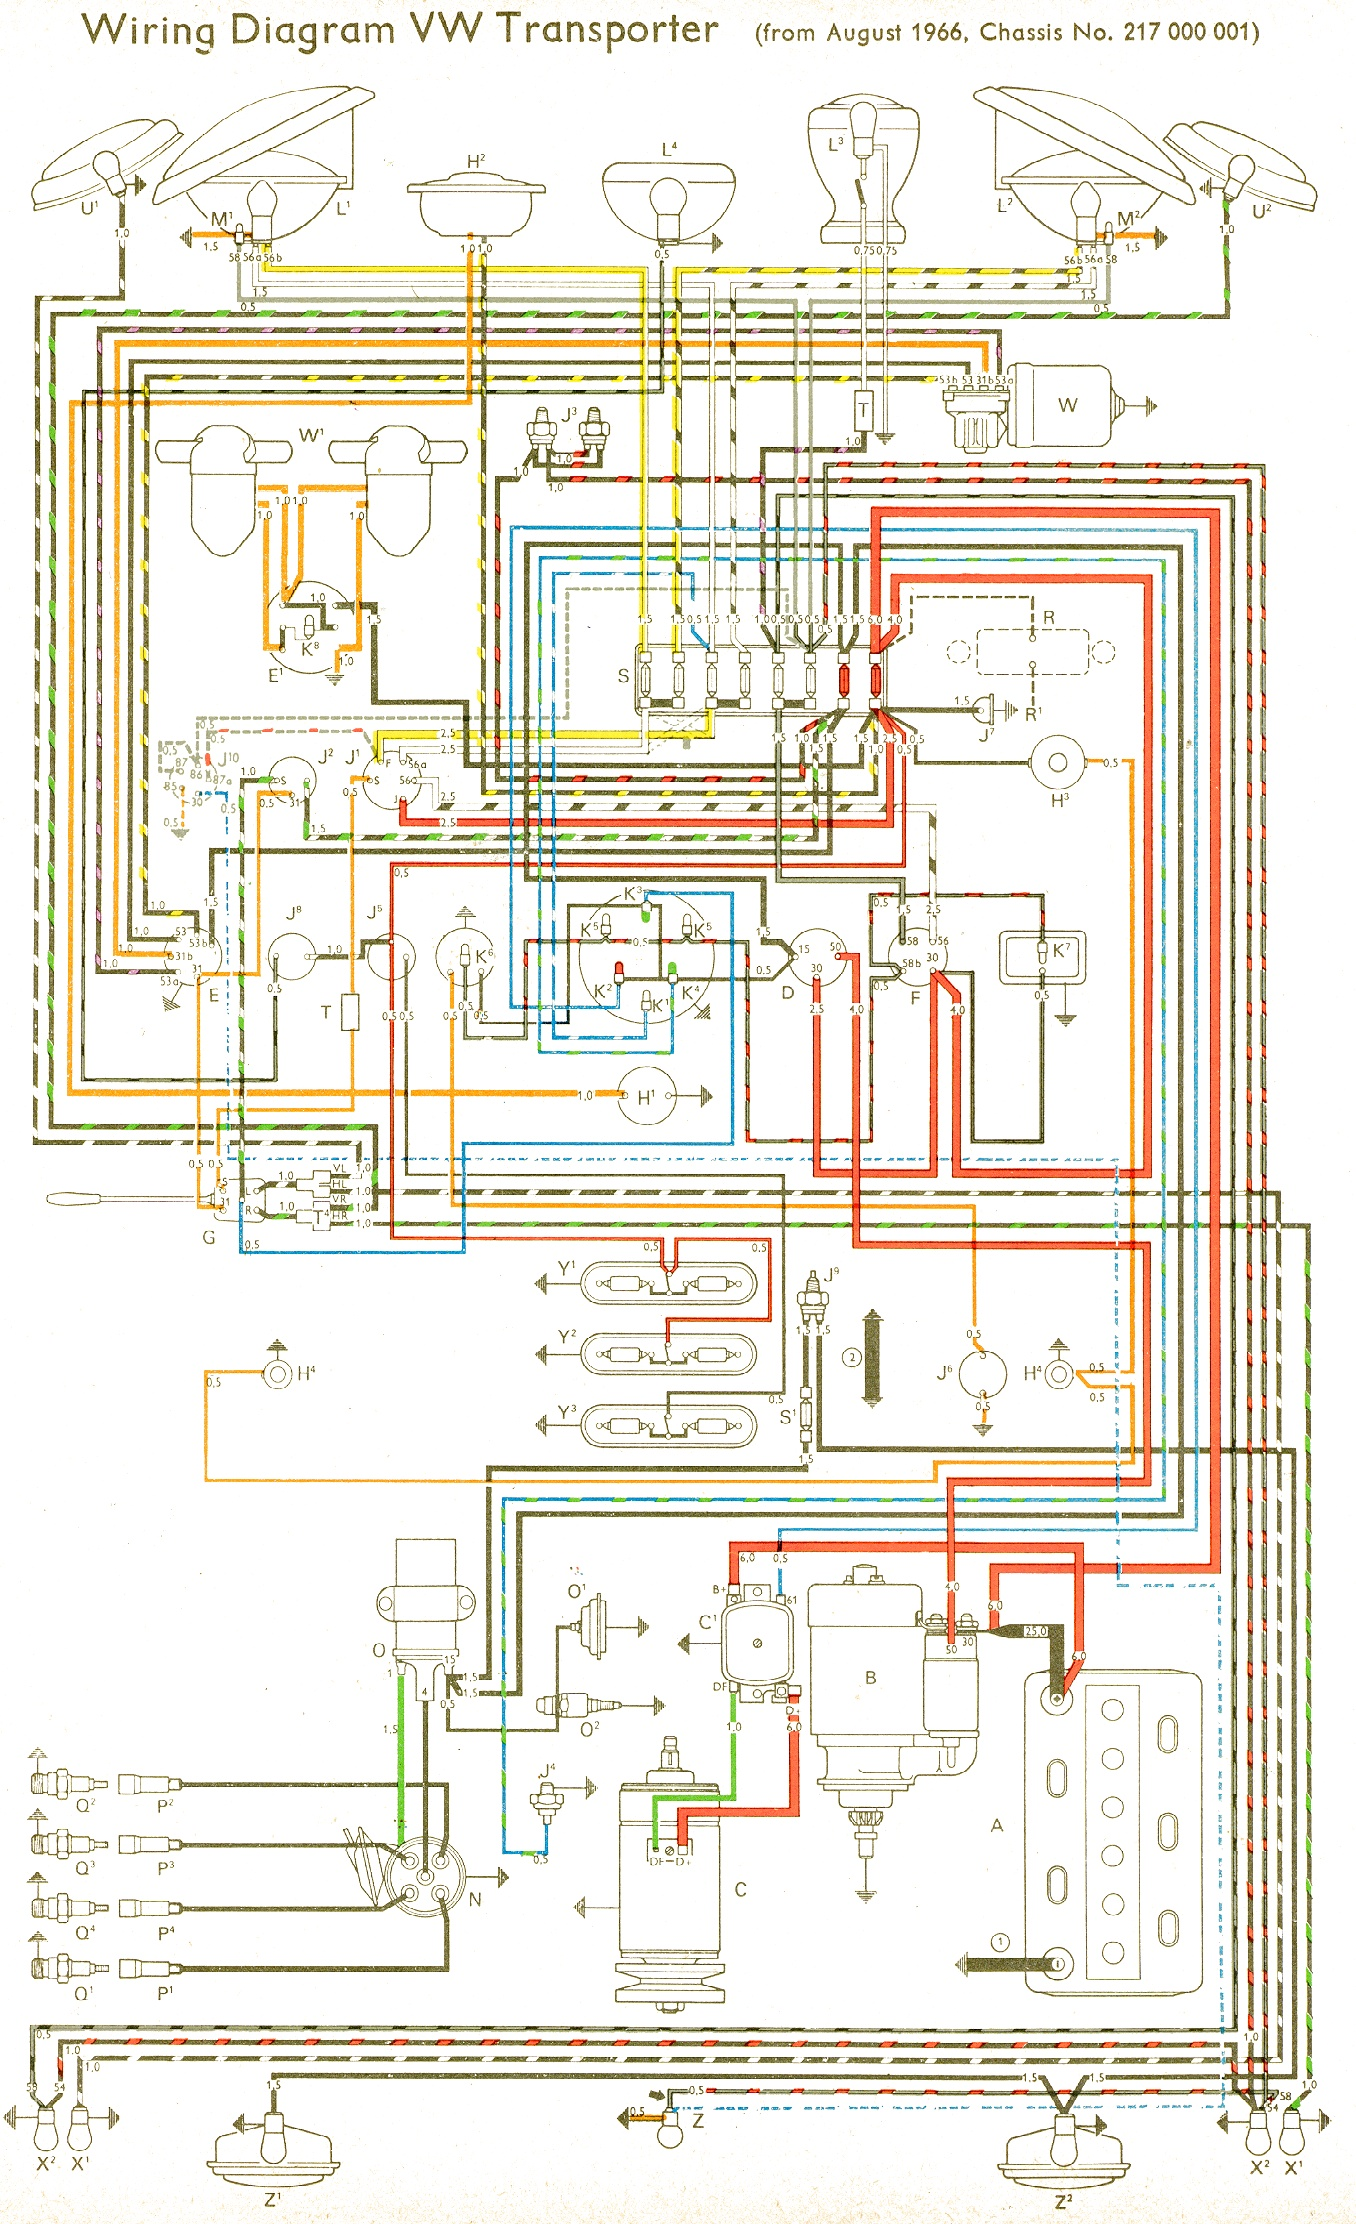 bus 66 bus wiring diagram vw wiring harness diagram \u2022 wiring diagrams j 1971 vw bus wiring diagram at bayanpartner.co